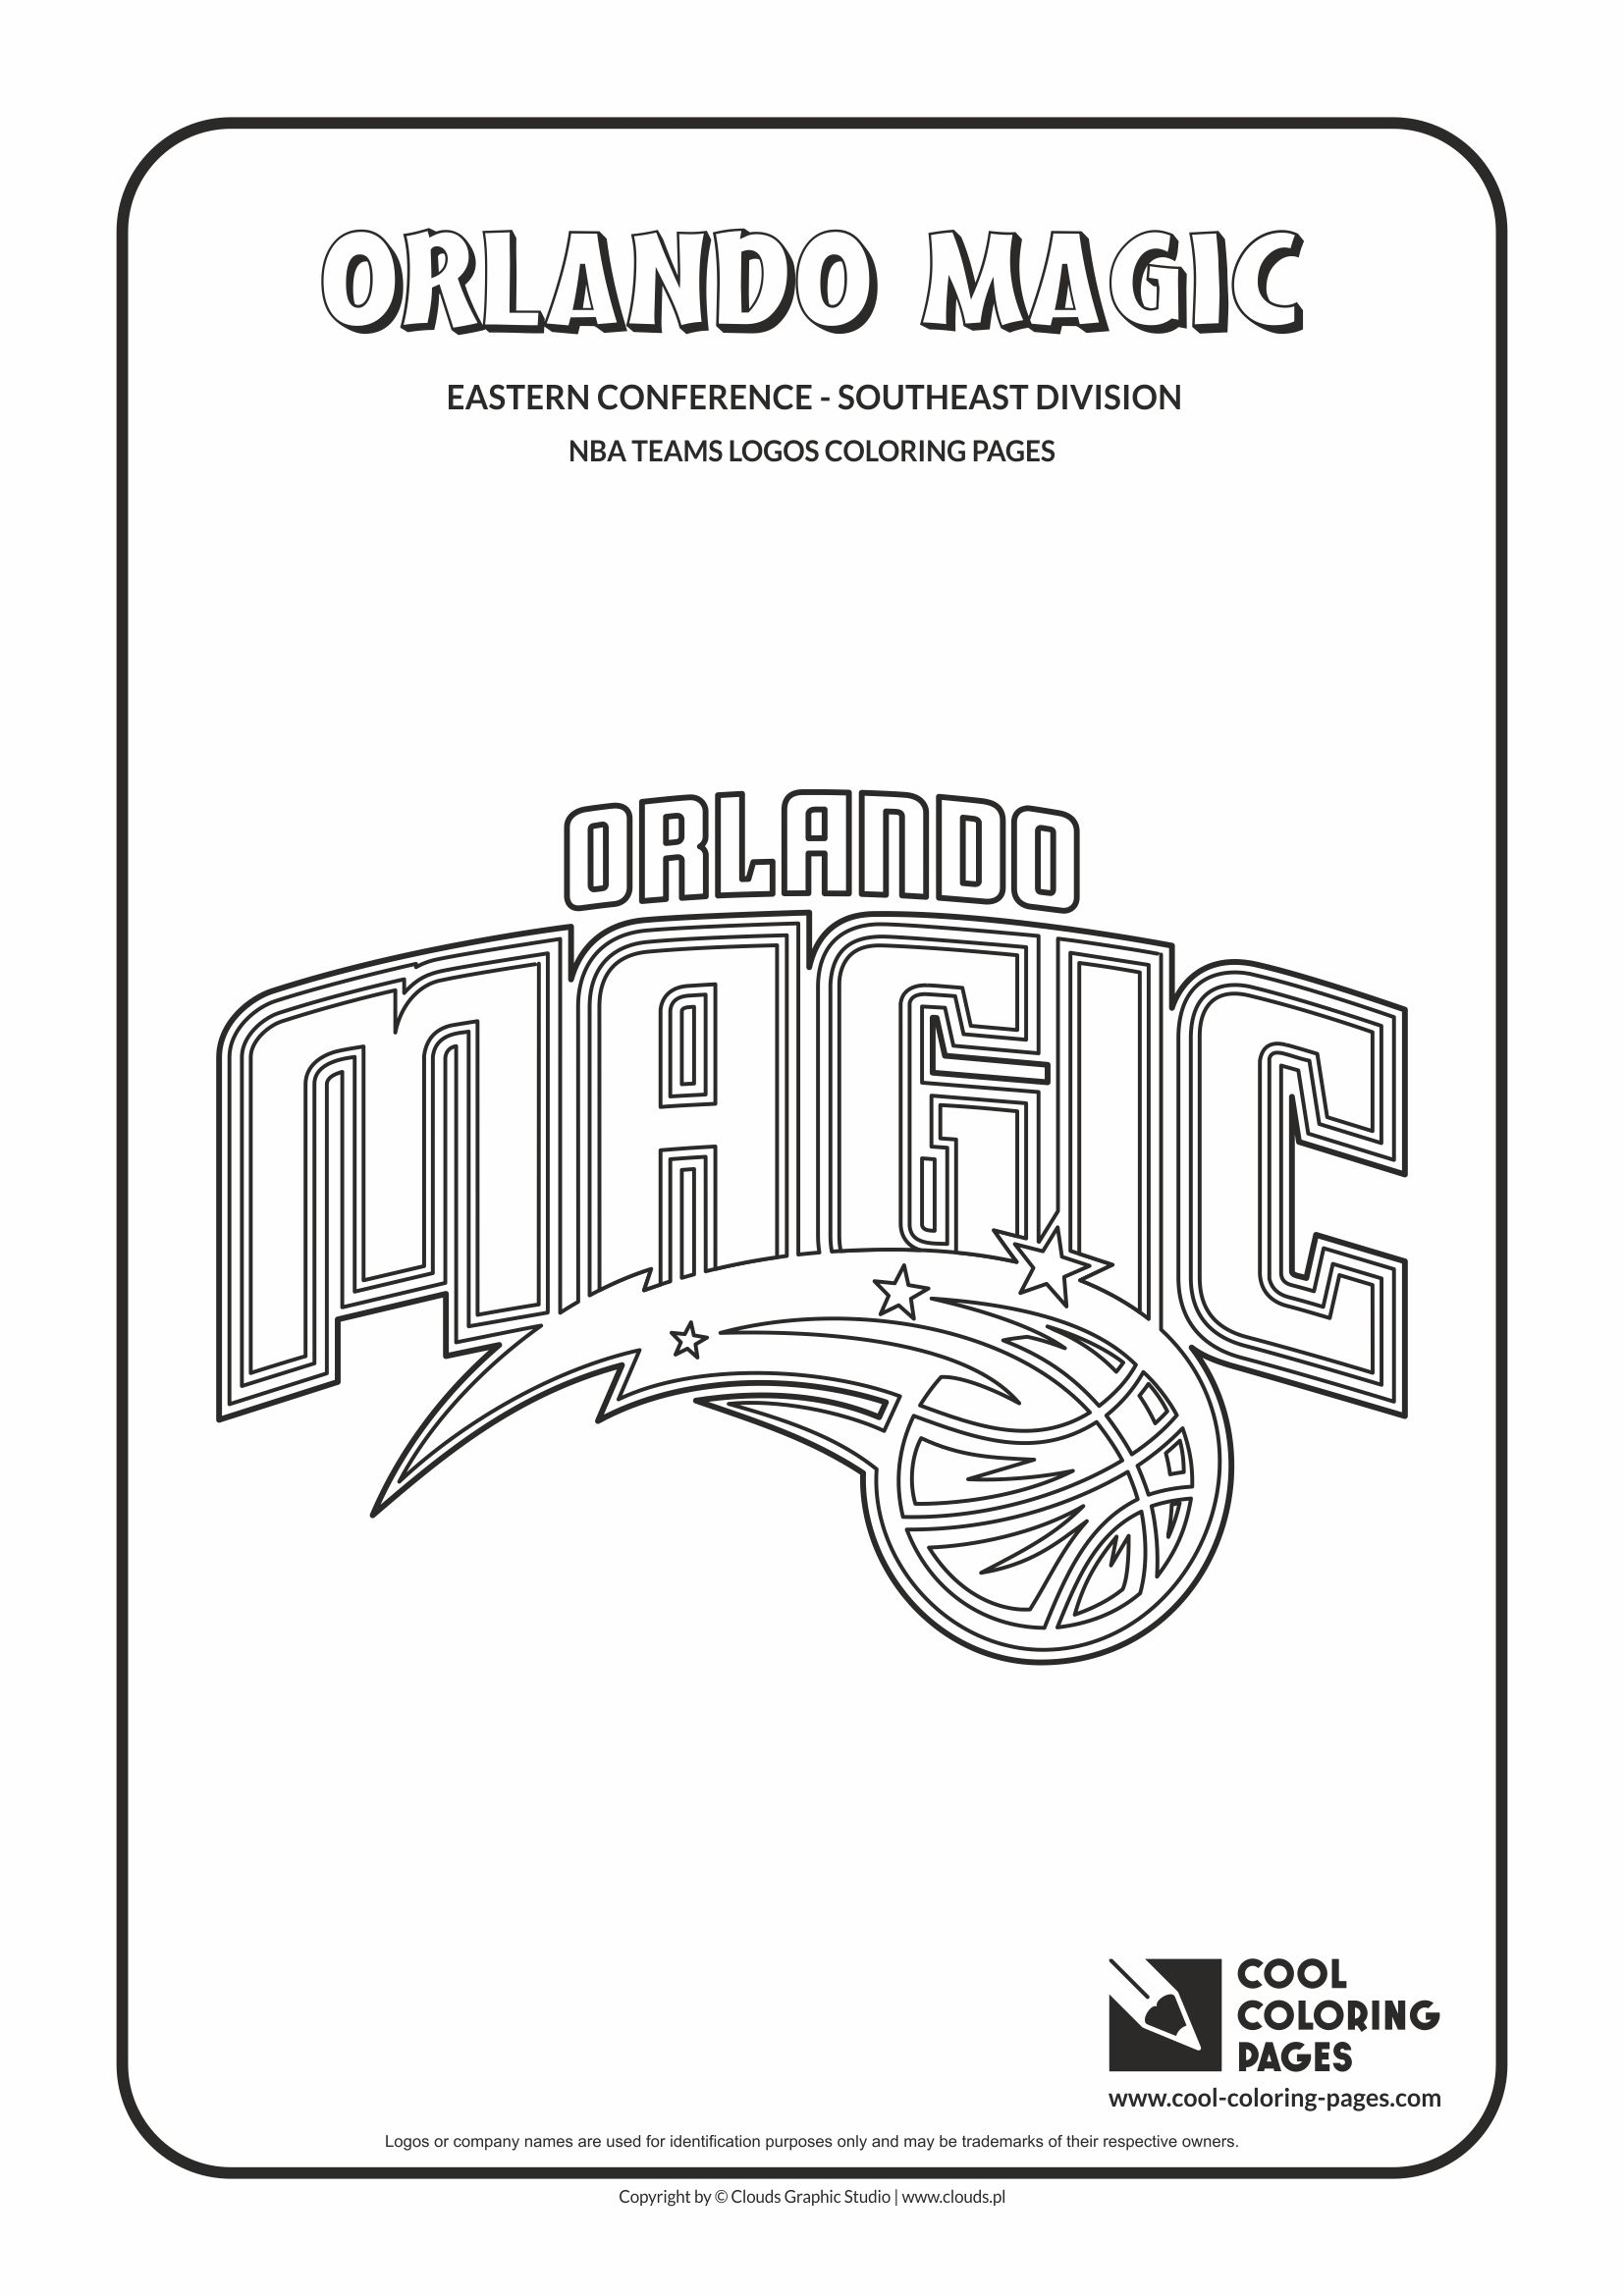 orlando magic u2013 nba basketball teams logos coloring pages cool